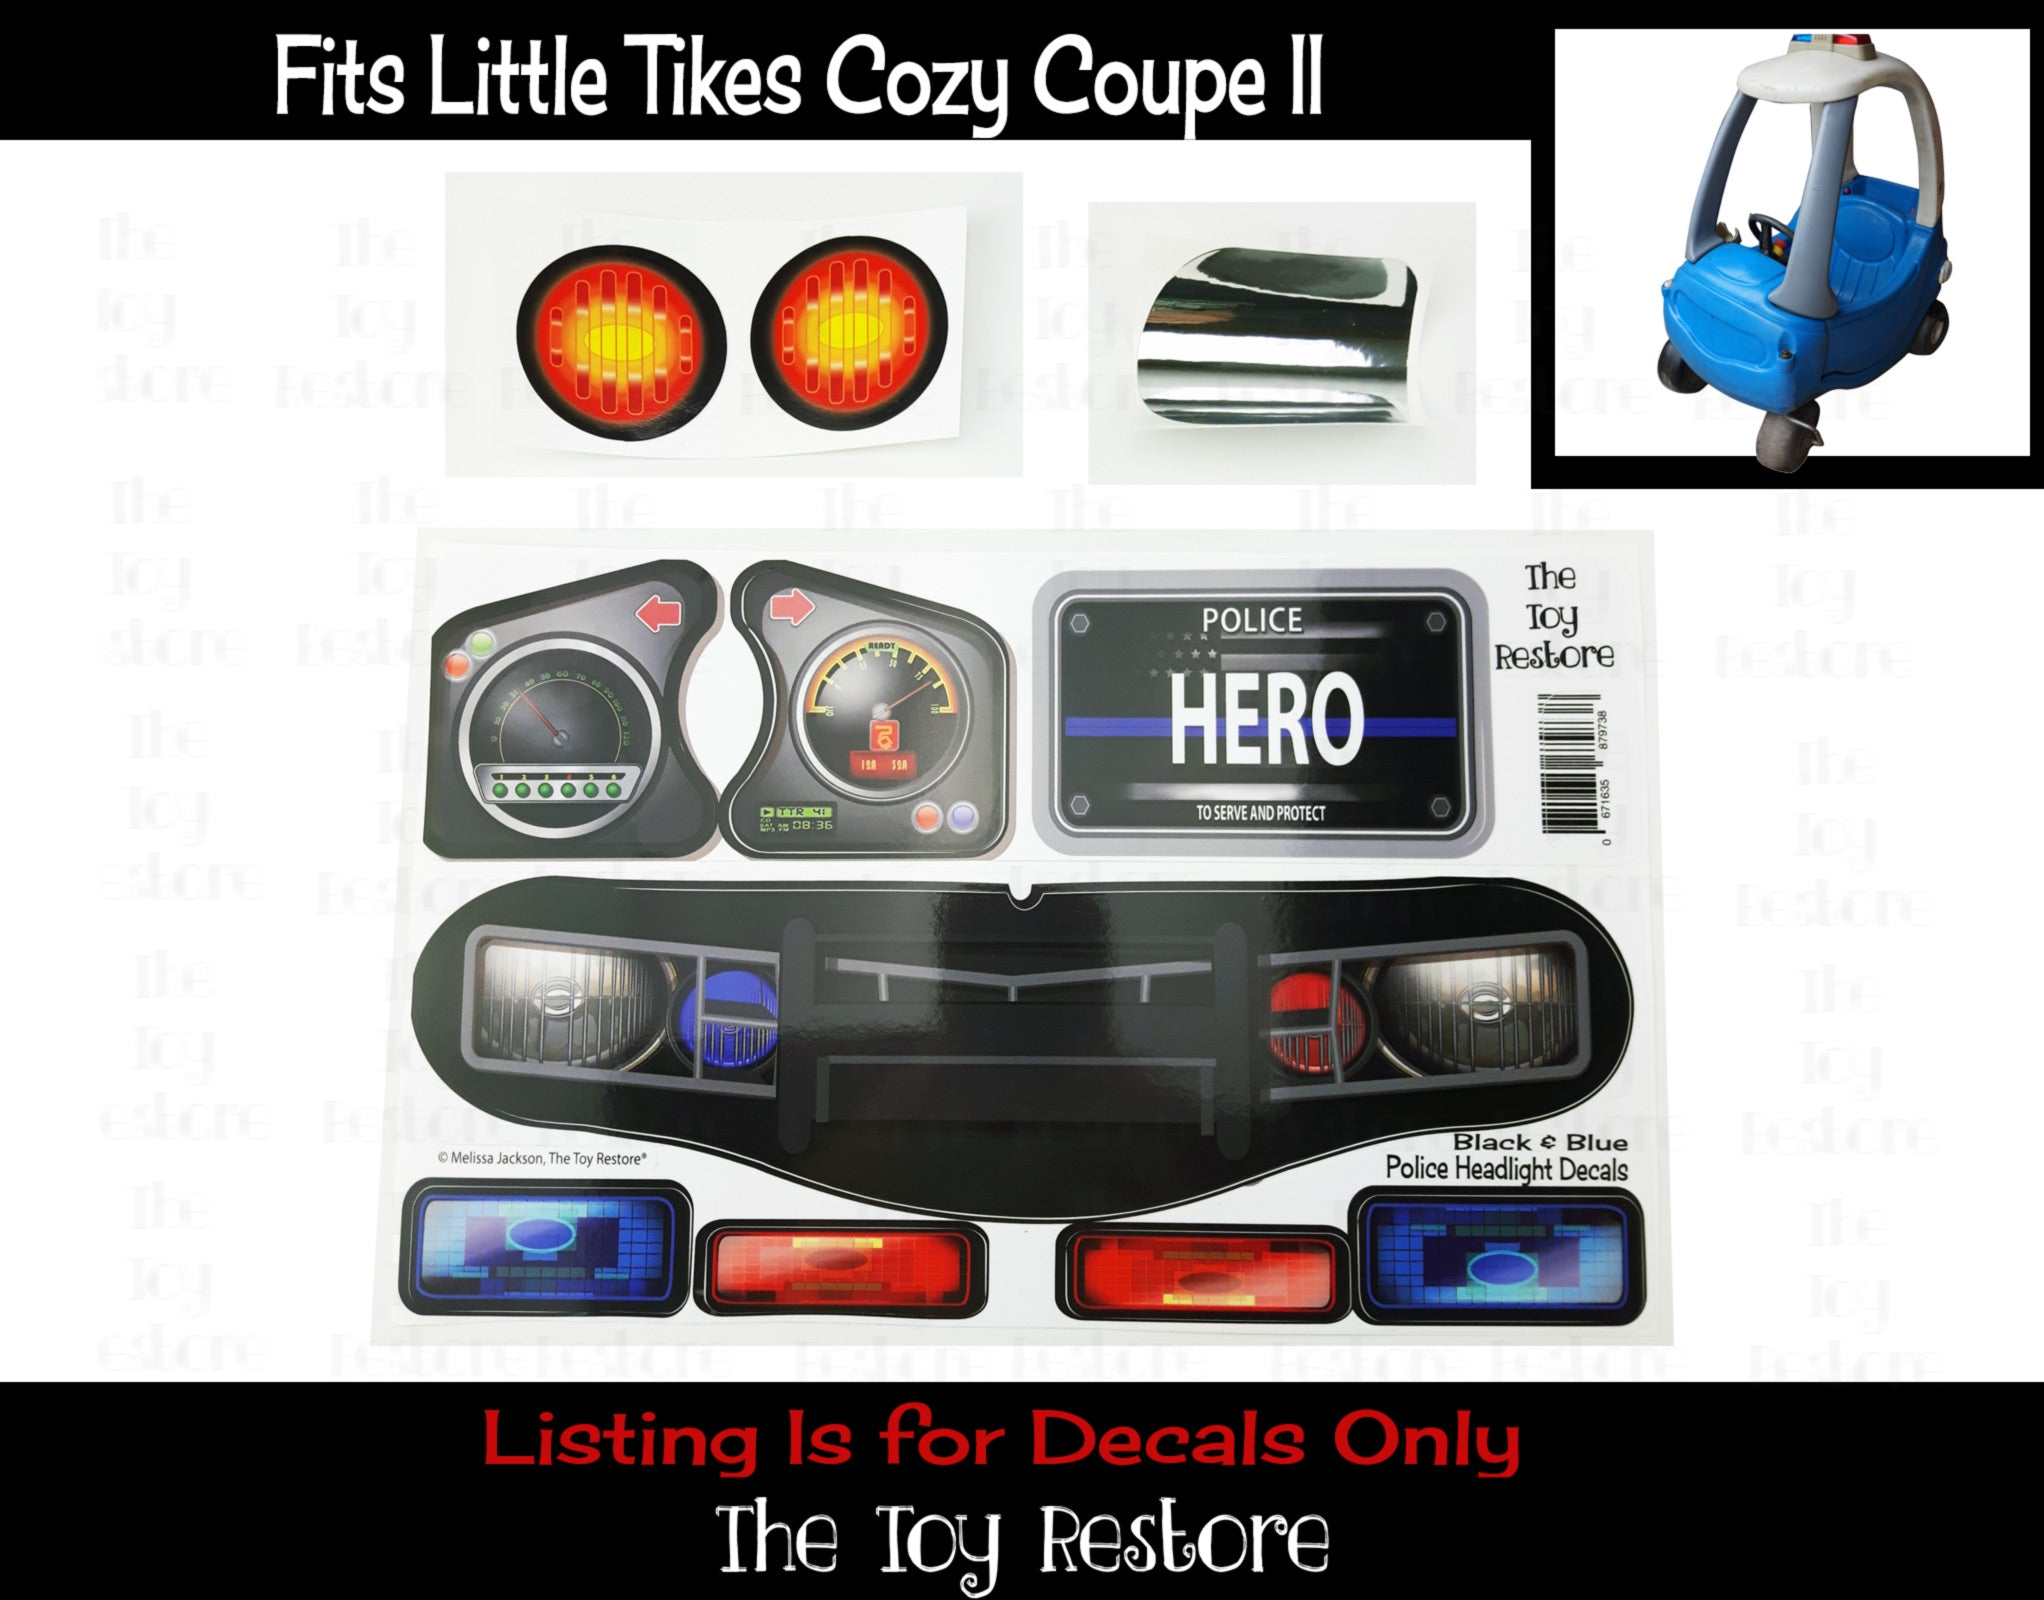 Police Decals Replacement Stickers Fits Little Tikes Custom Cozy Coupe The Toy Restore [ 1600 x 2044 Pixel ]